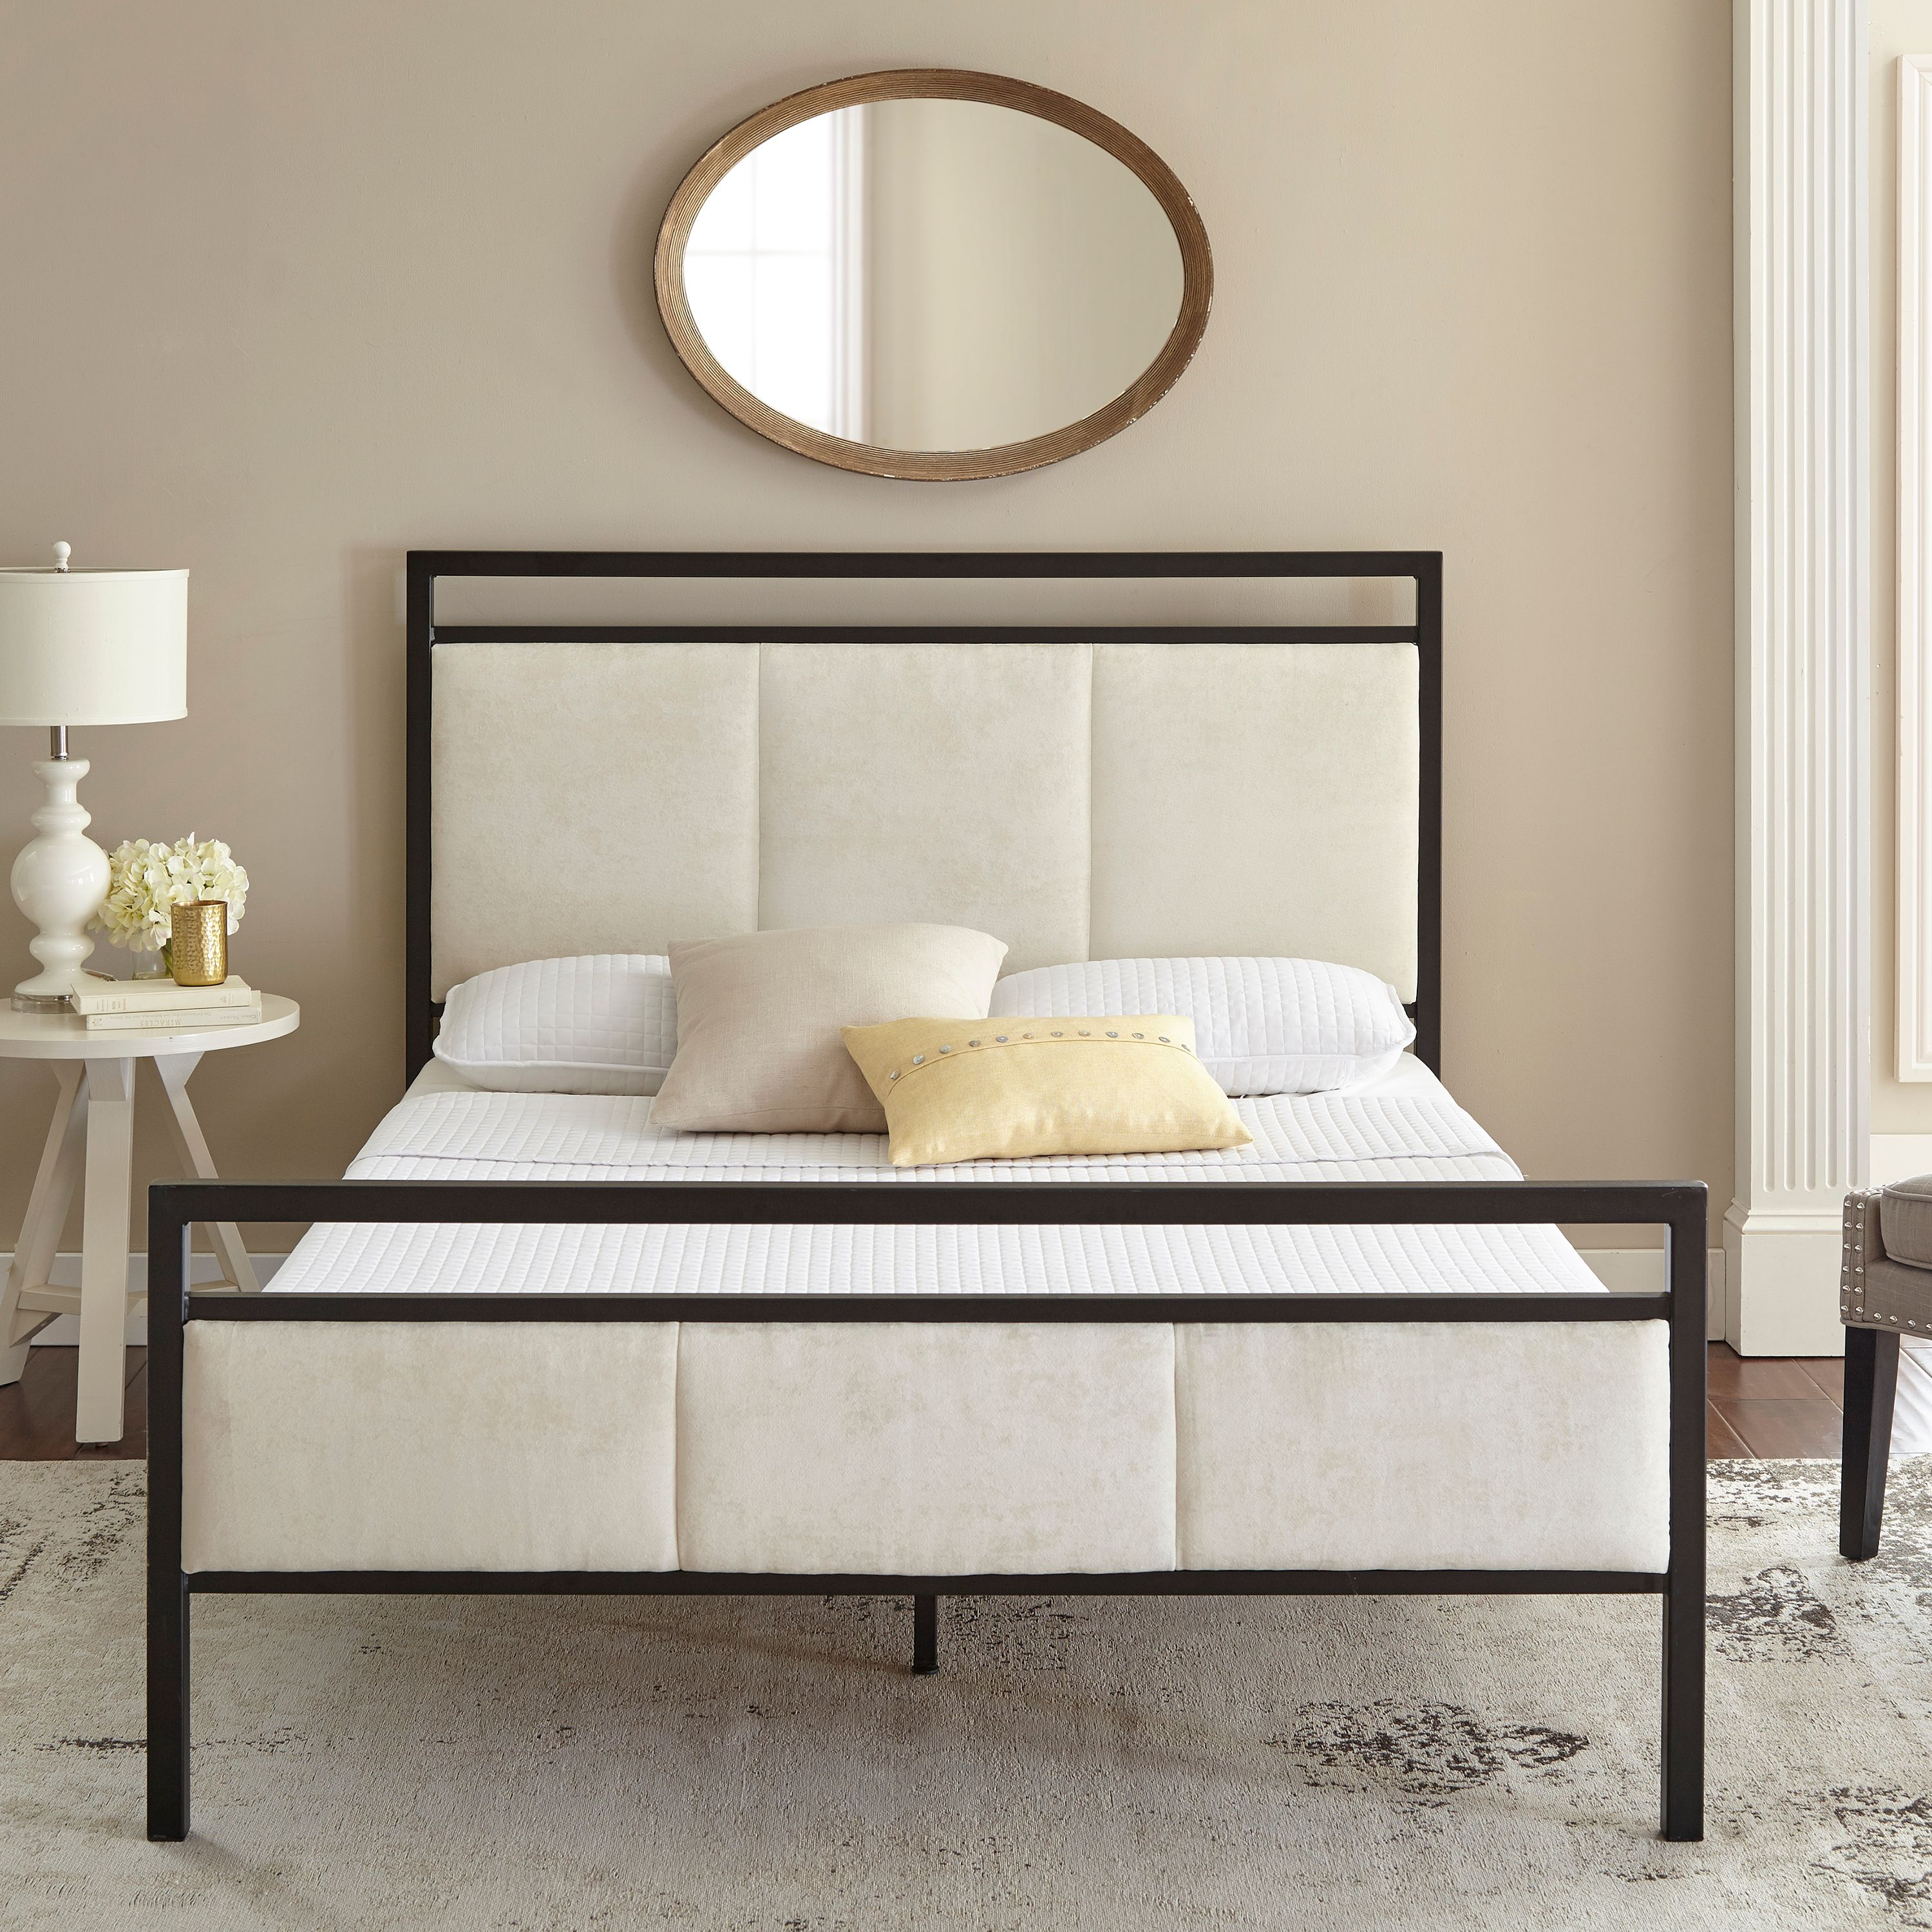 Premier Isaac Platform Metal Bed Frame with Bonus Base Wooden Slat System, Multiple Sizes